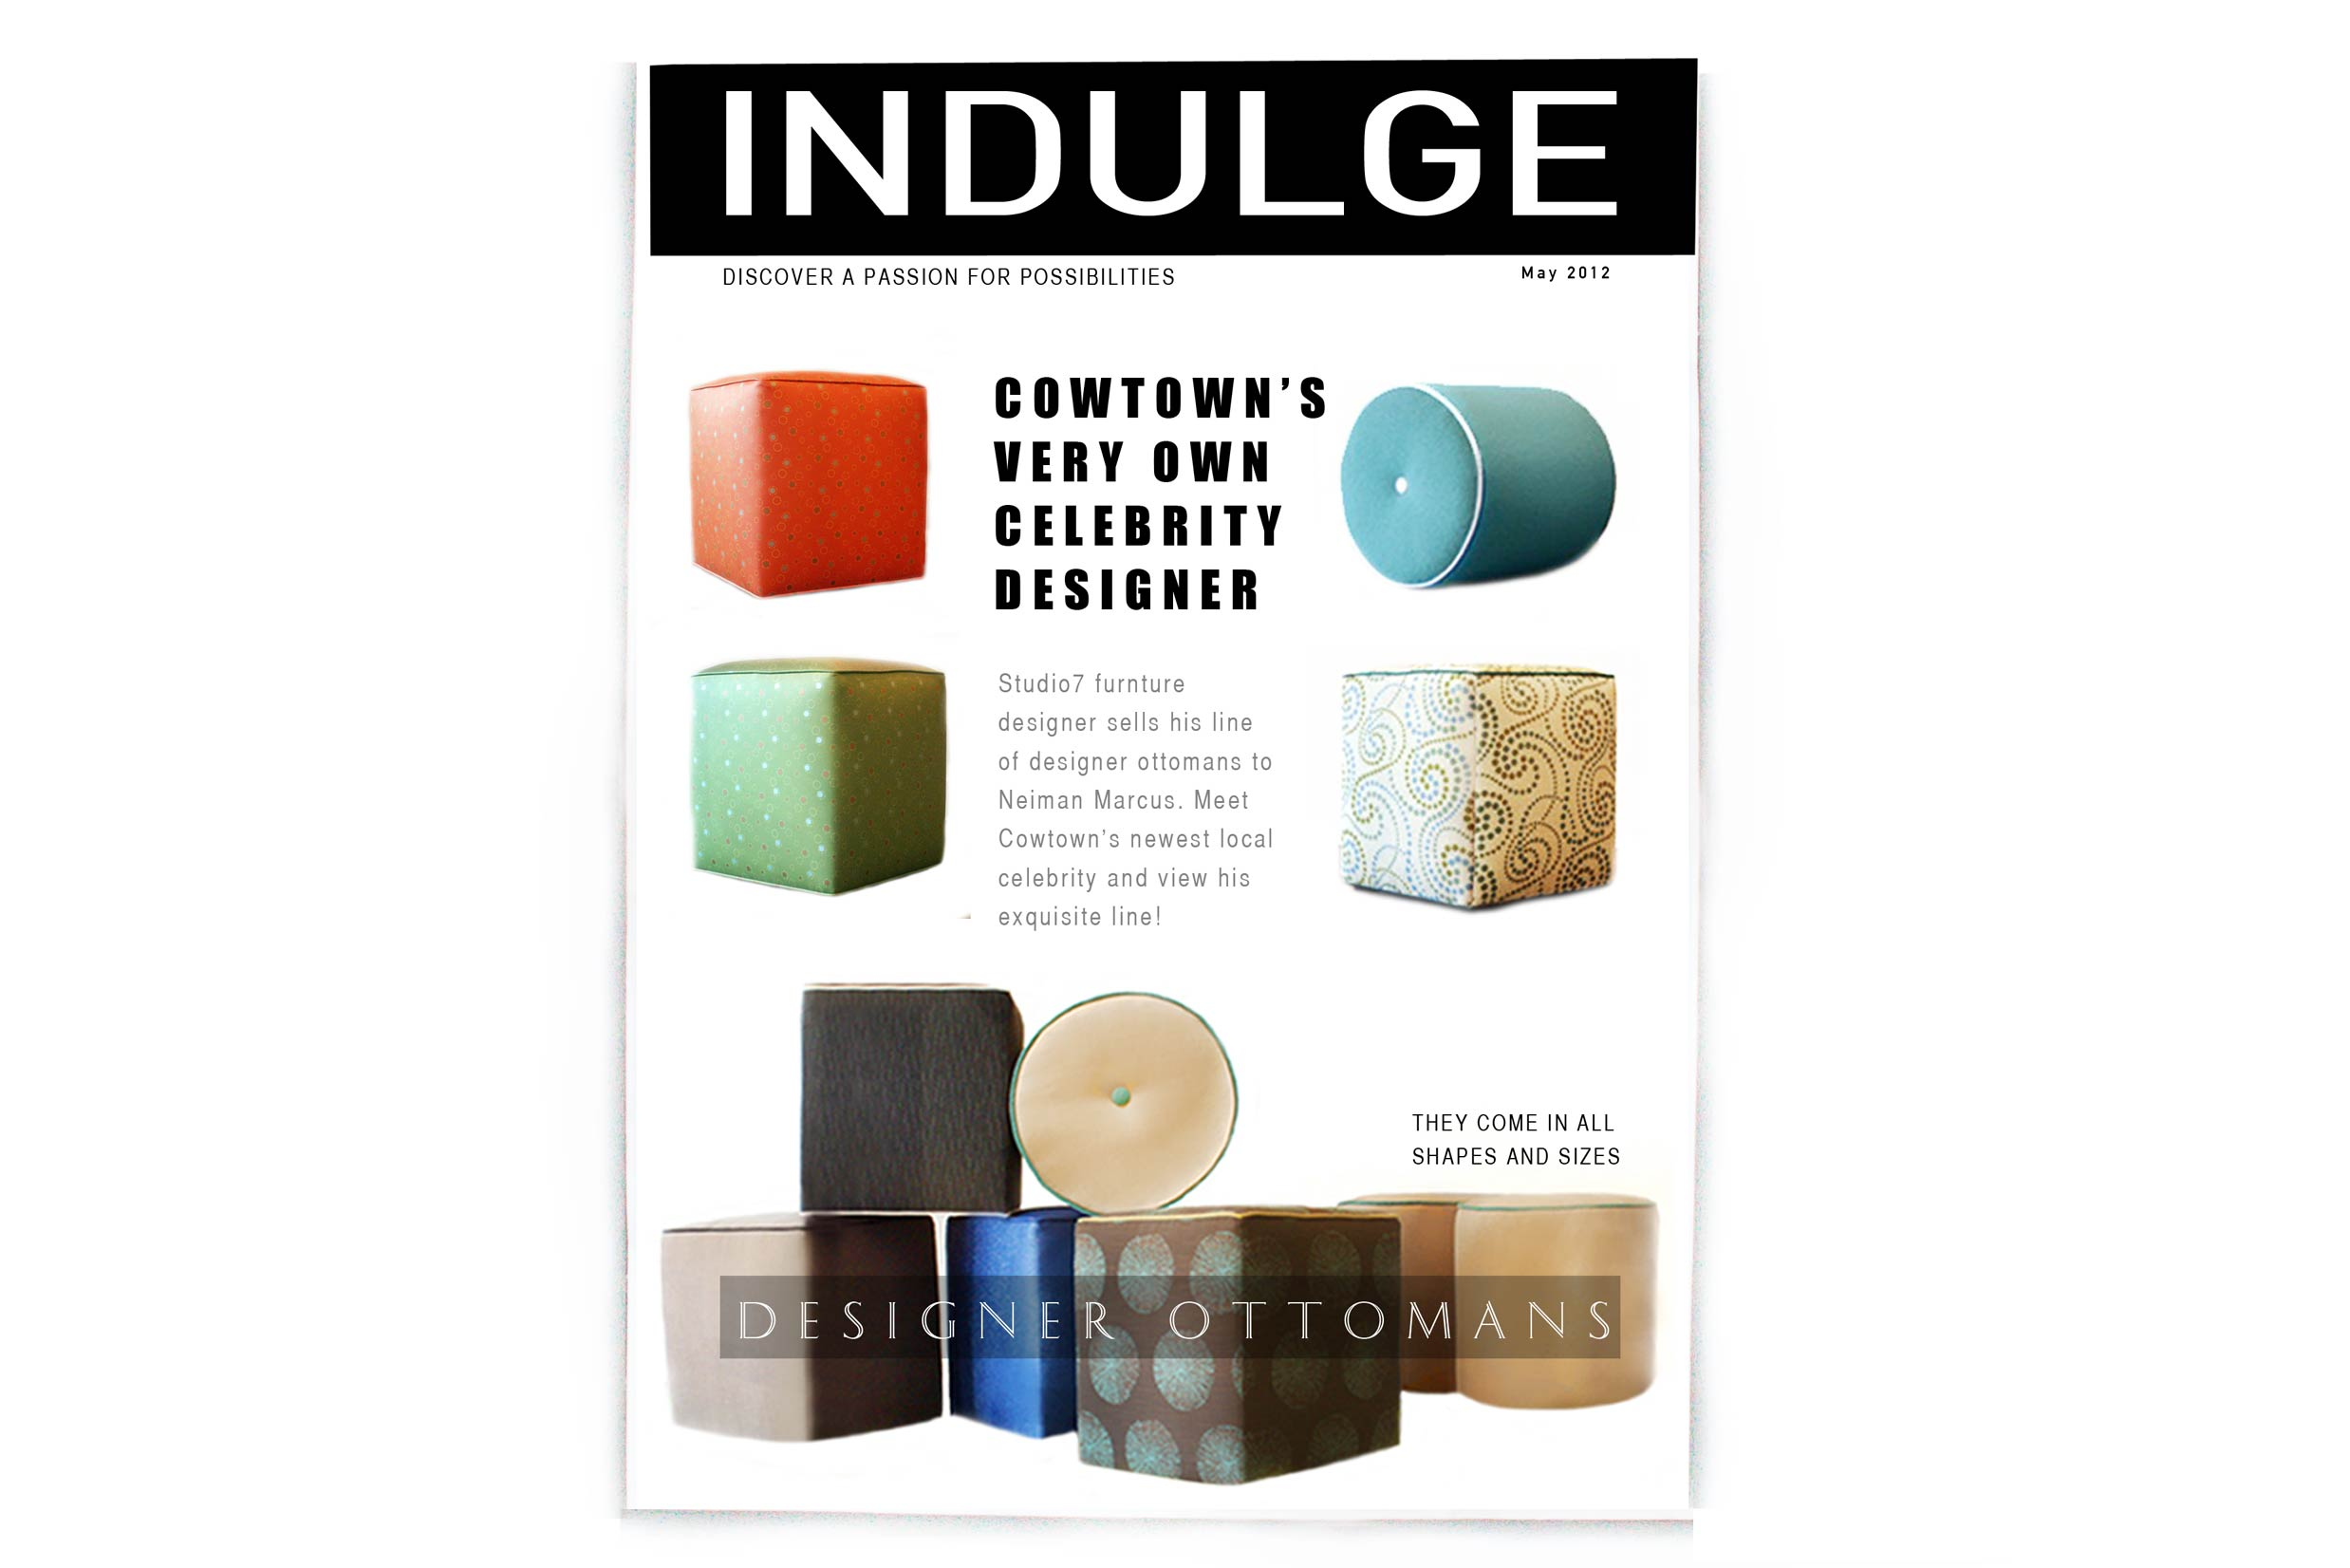 Indulge-Cover-ottomans4-web4